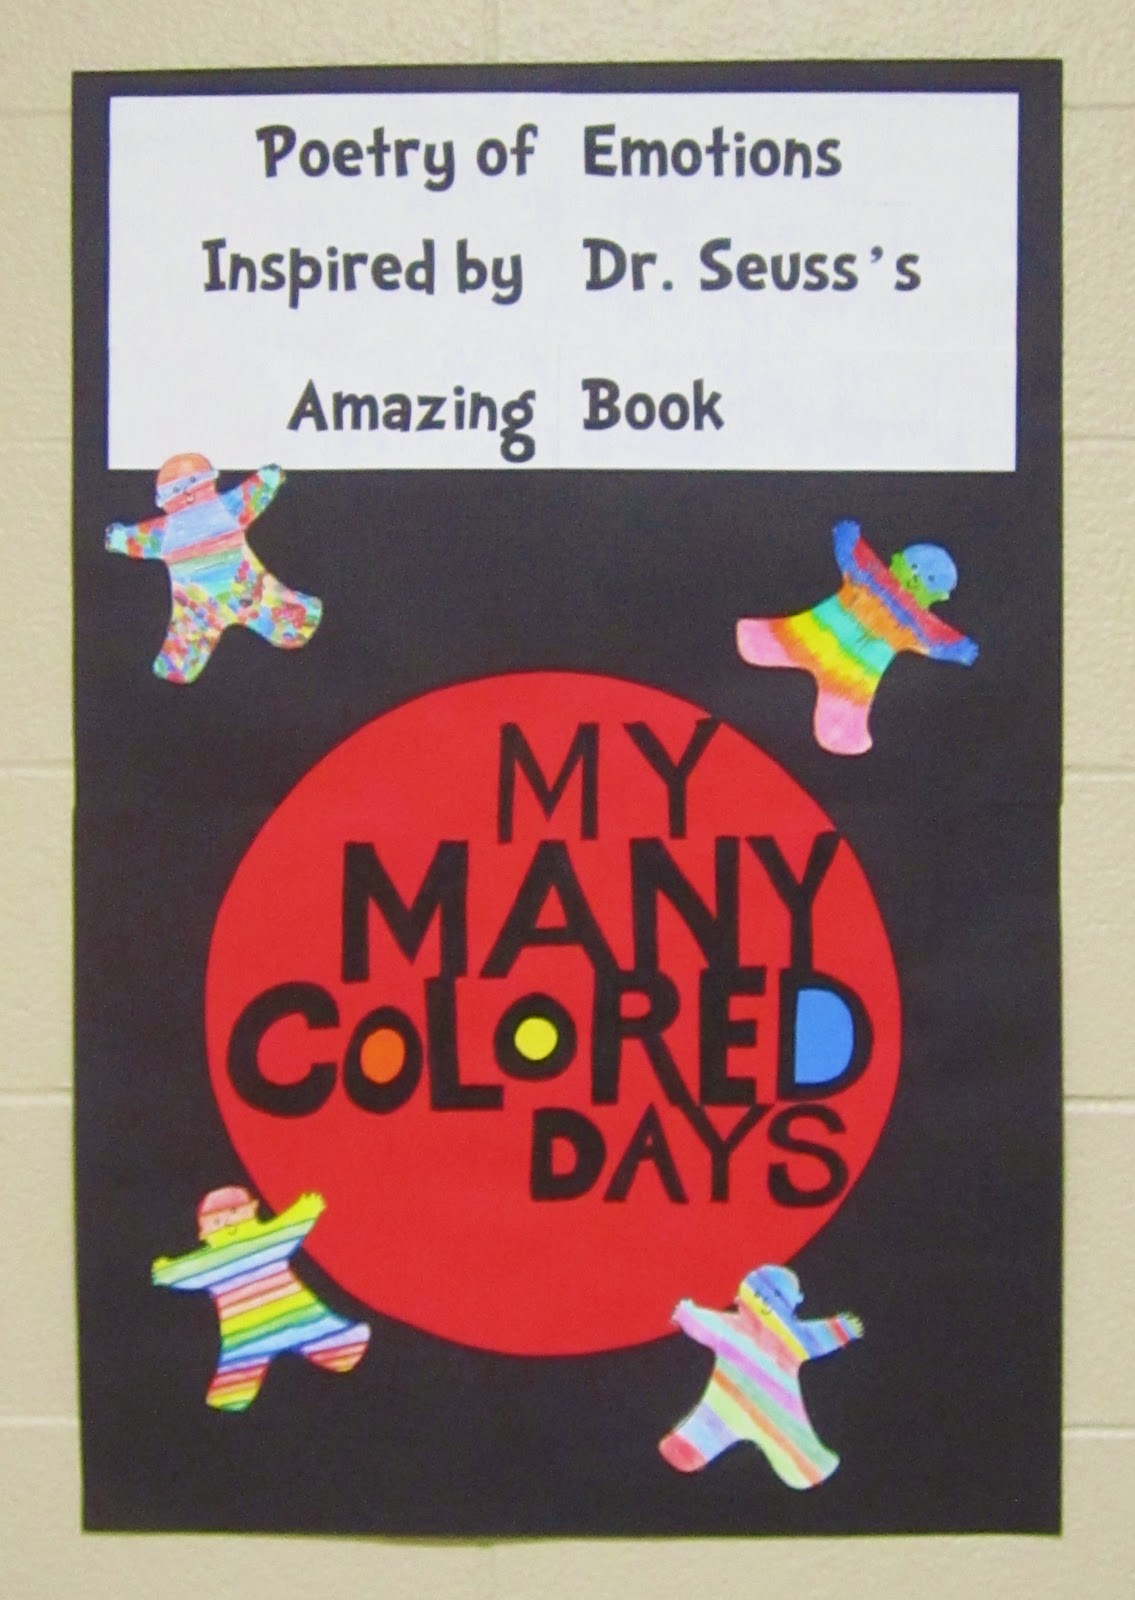 Teaching My Friends!: My Many Colored Days